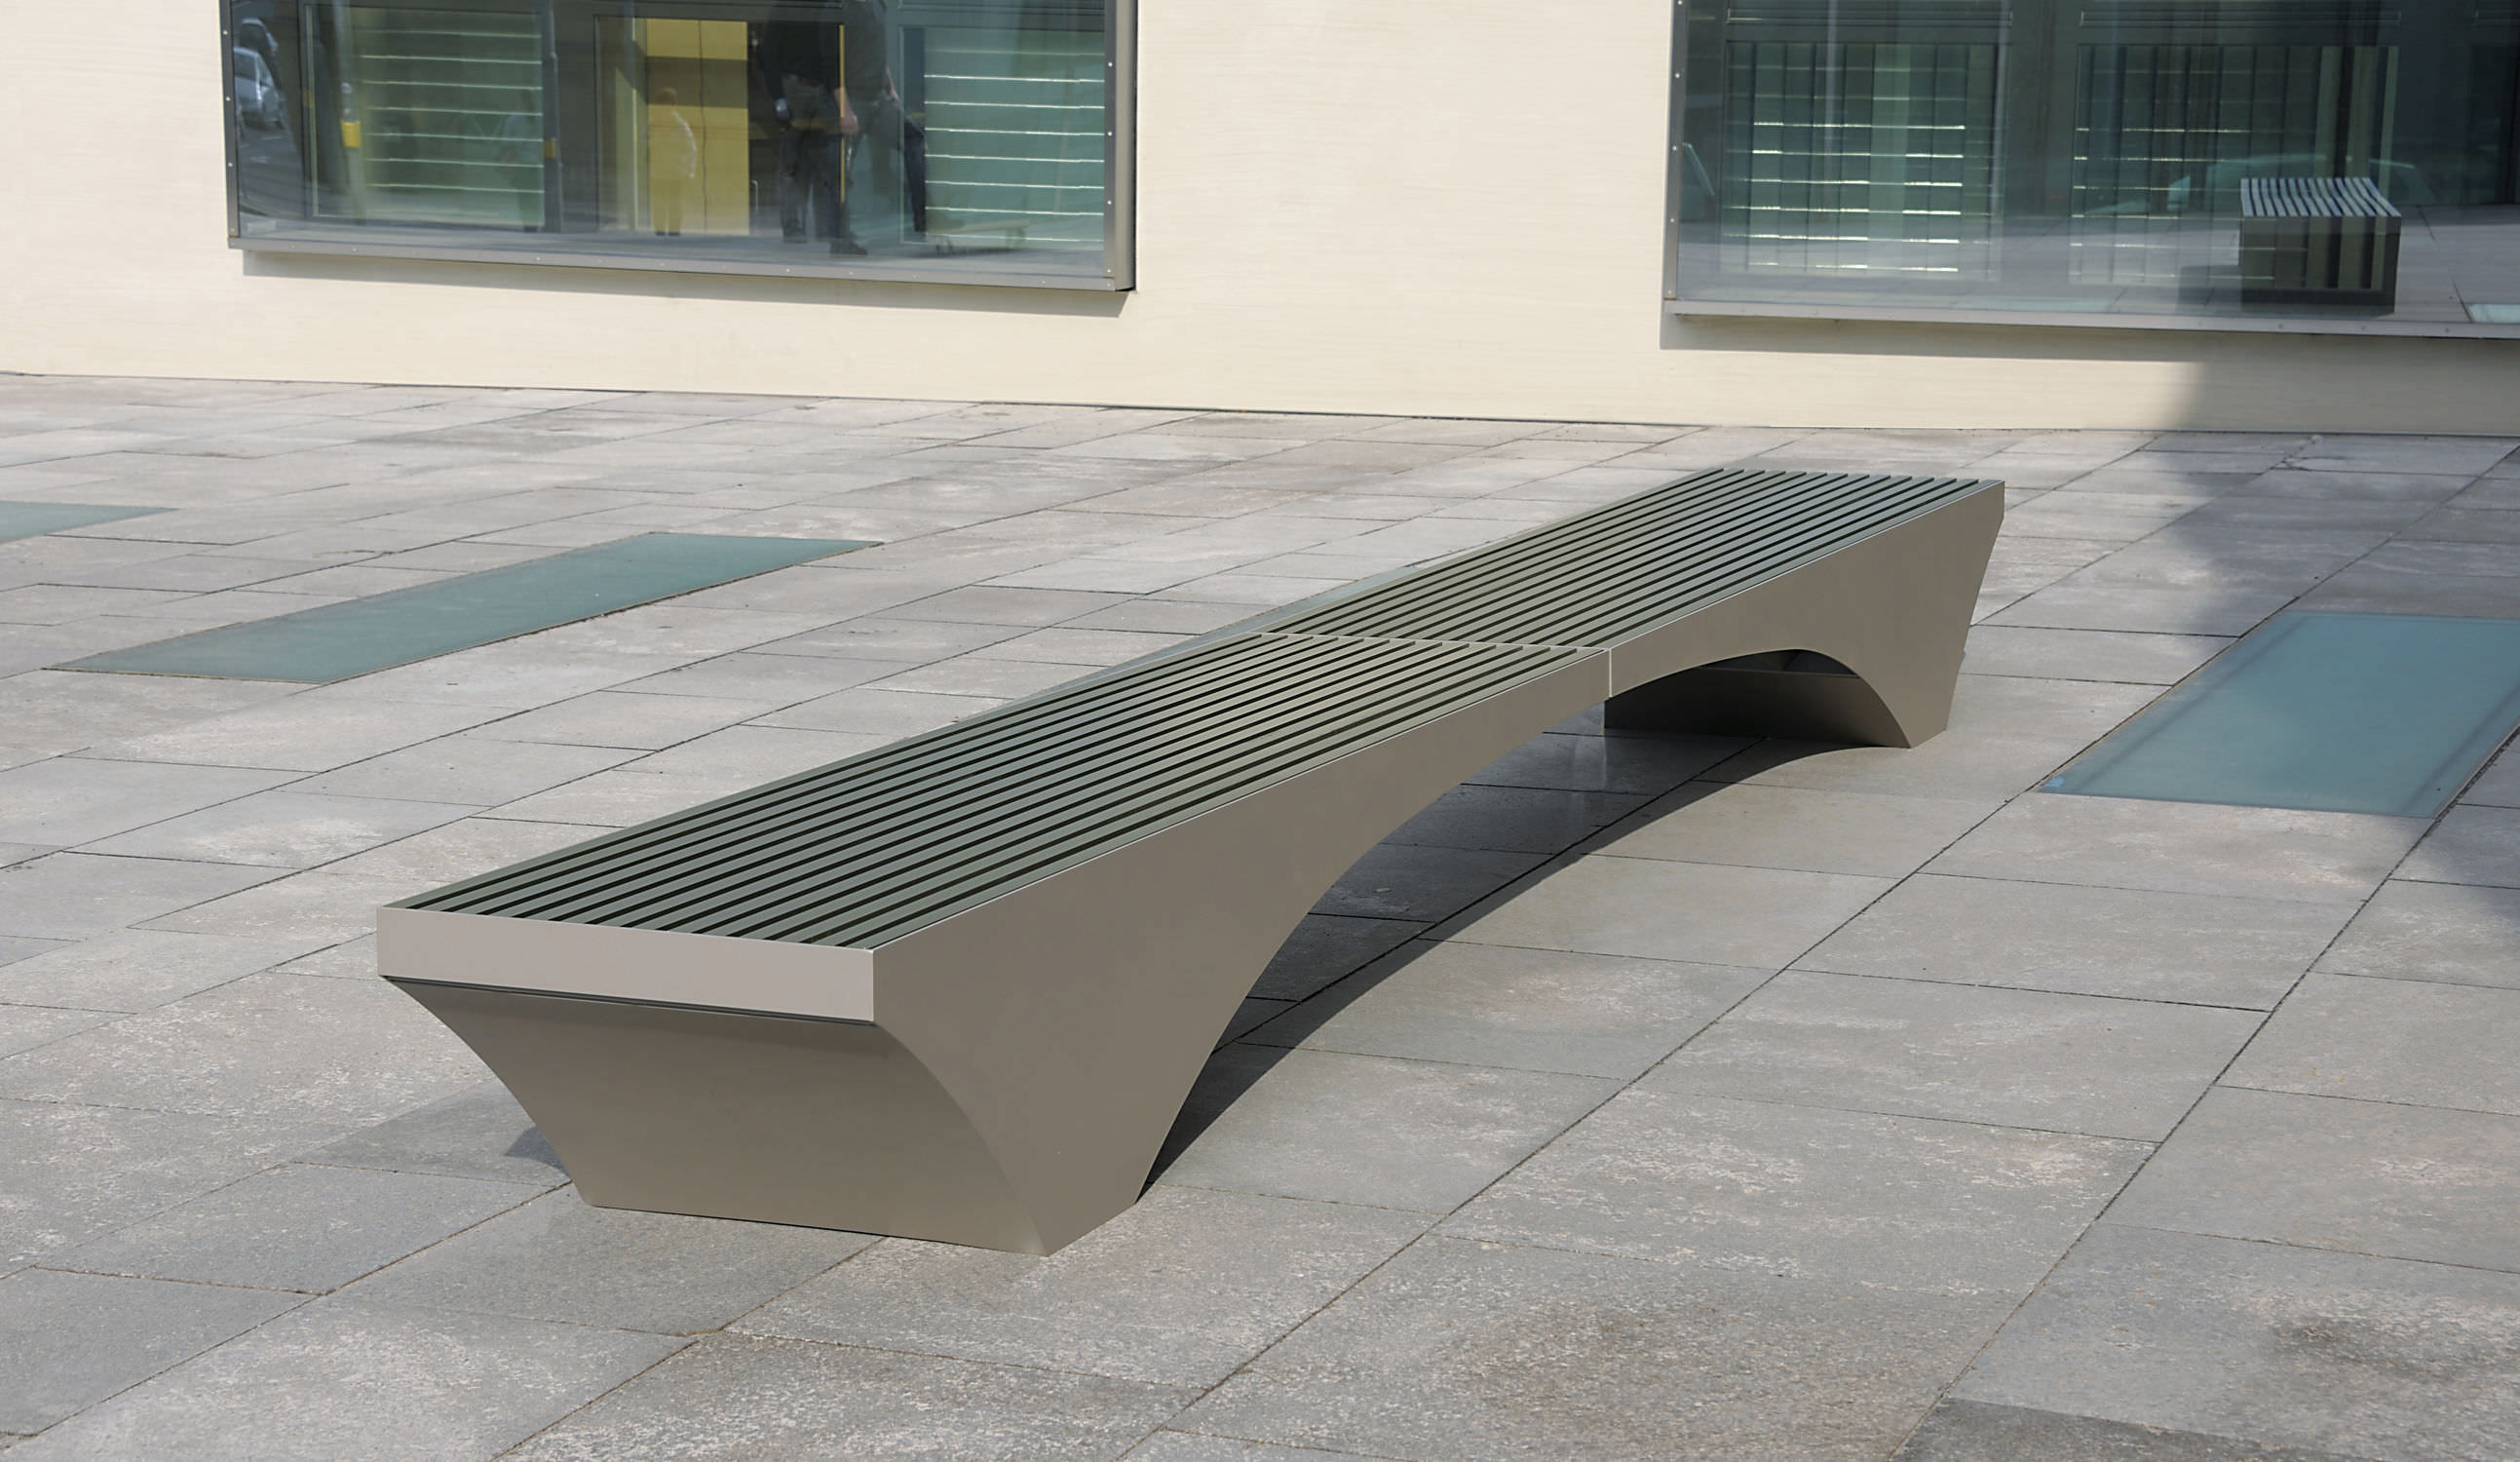 metal home for hd dream bench park cool wallpapers gorgeous benches pictures